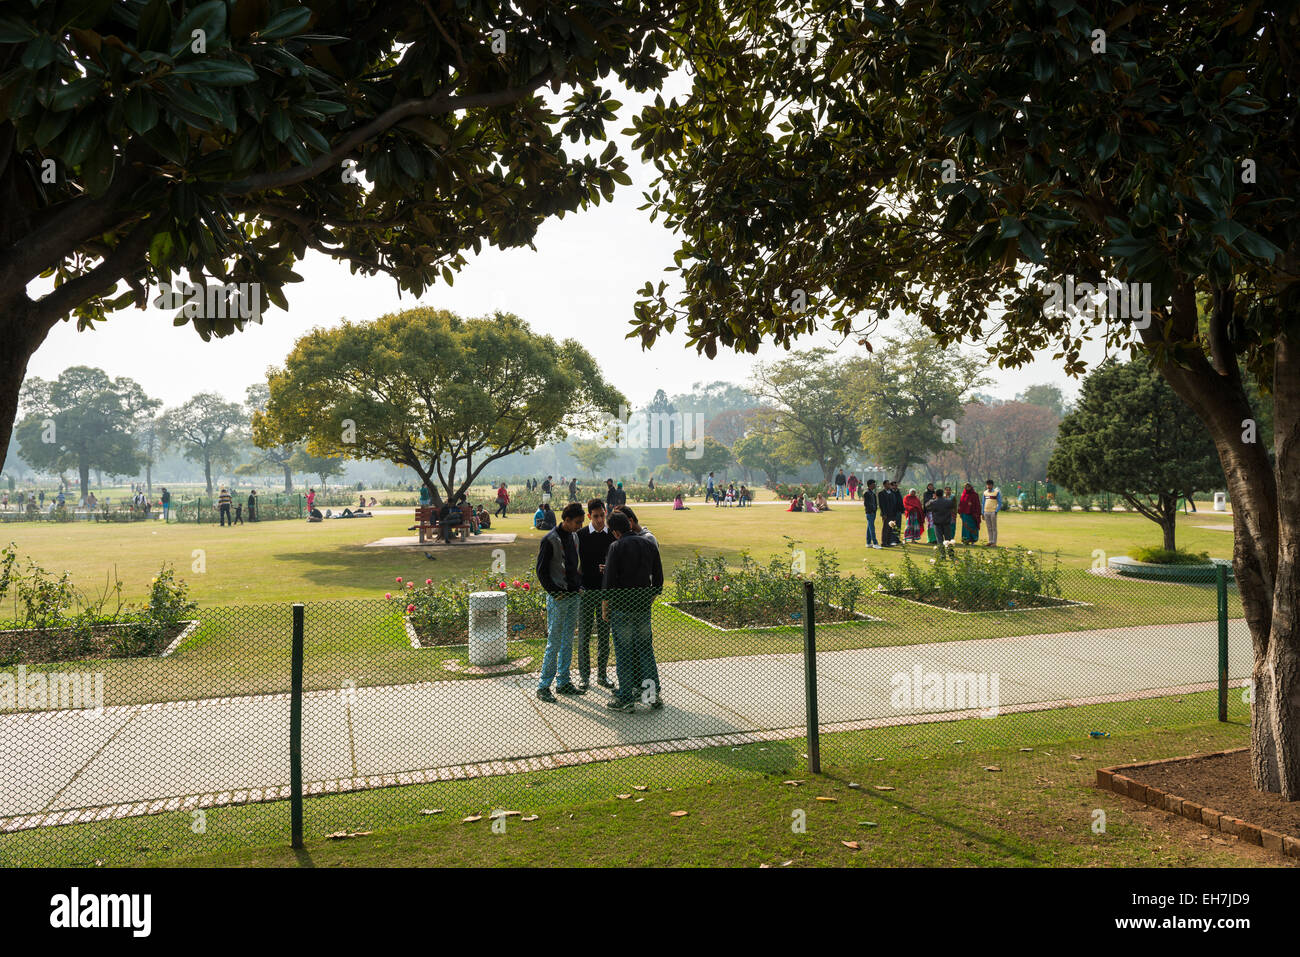 Families relaxing in the Rose Garden in the central park of Chandigarh, India - Stock Image